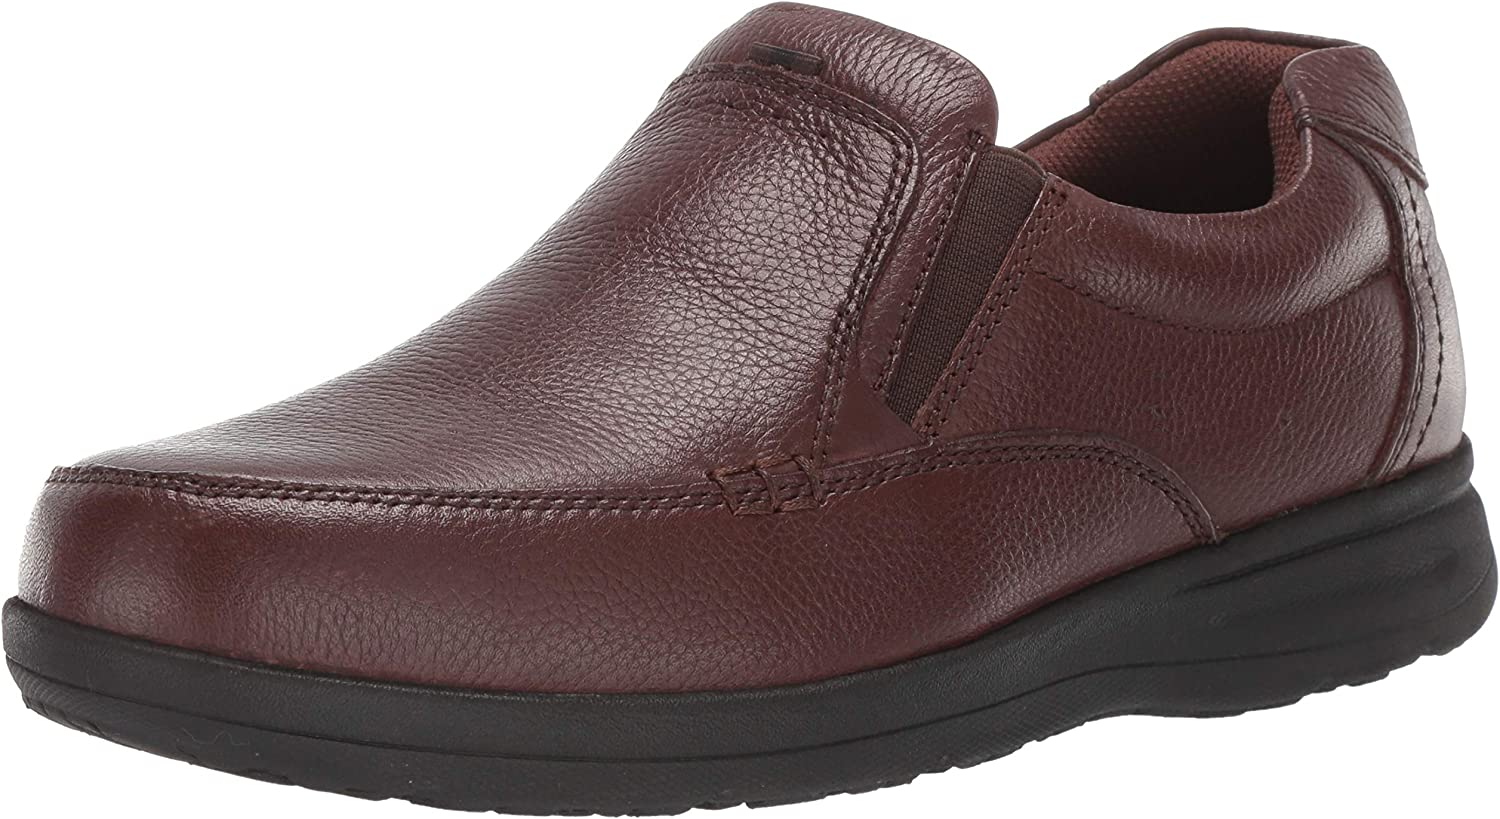 Nunn Bush Men's Cam Moc Toe Slip-On Brown Tumbled Leather 15 W US W (EE)